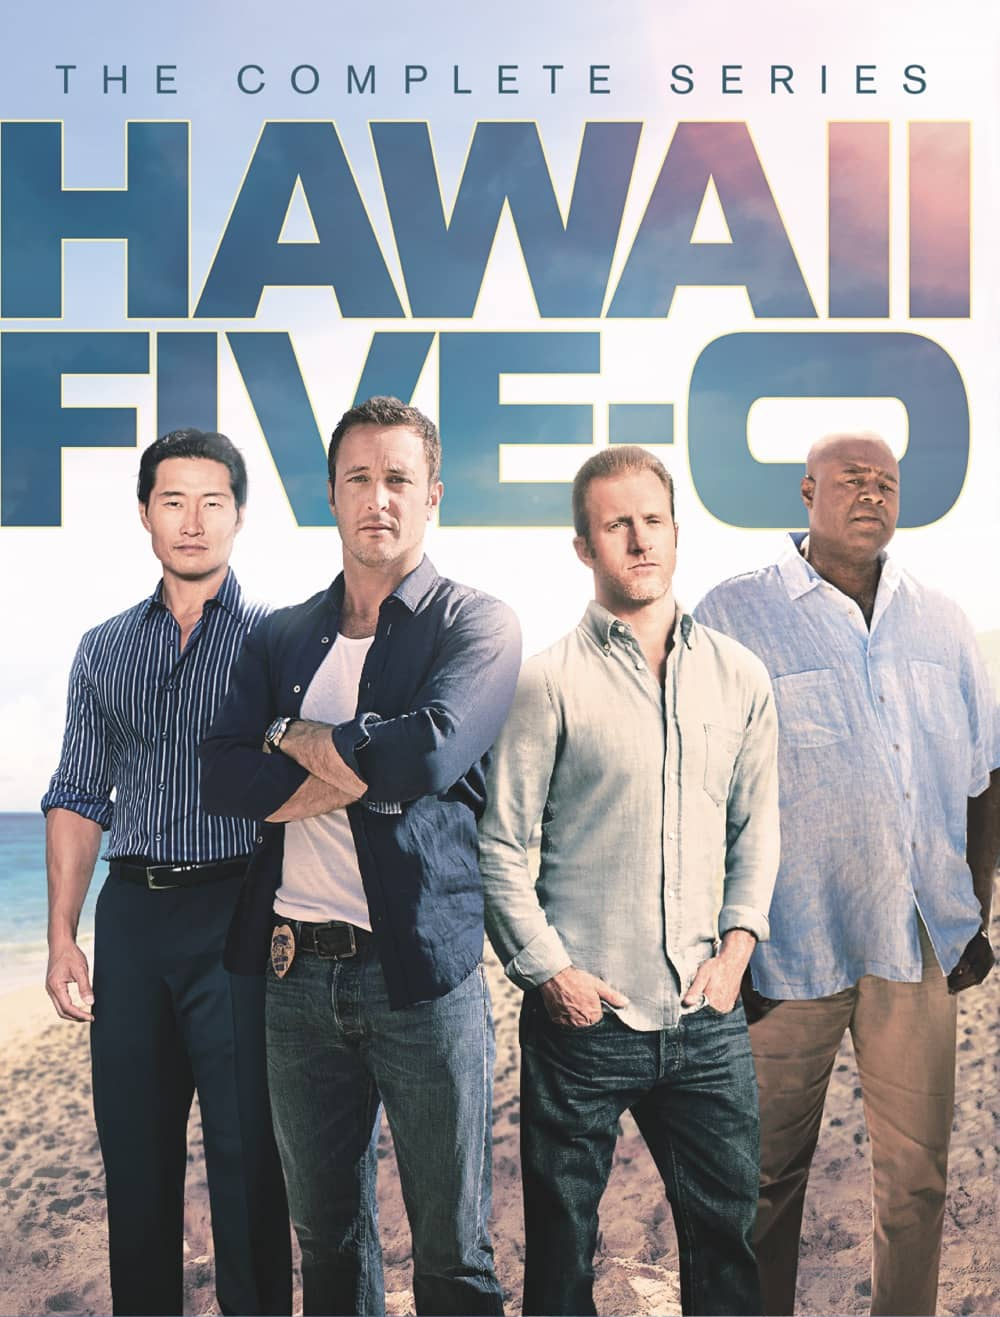 HAWAII FIVE-0 Complete Series DVD Cover